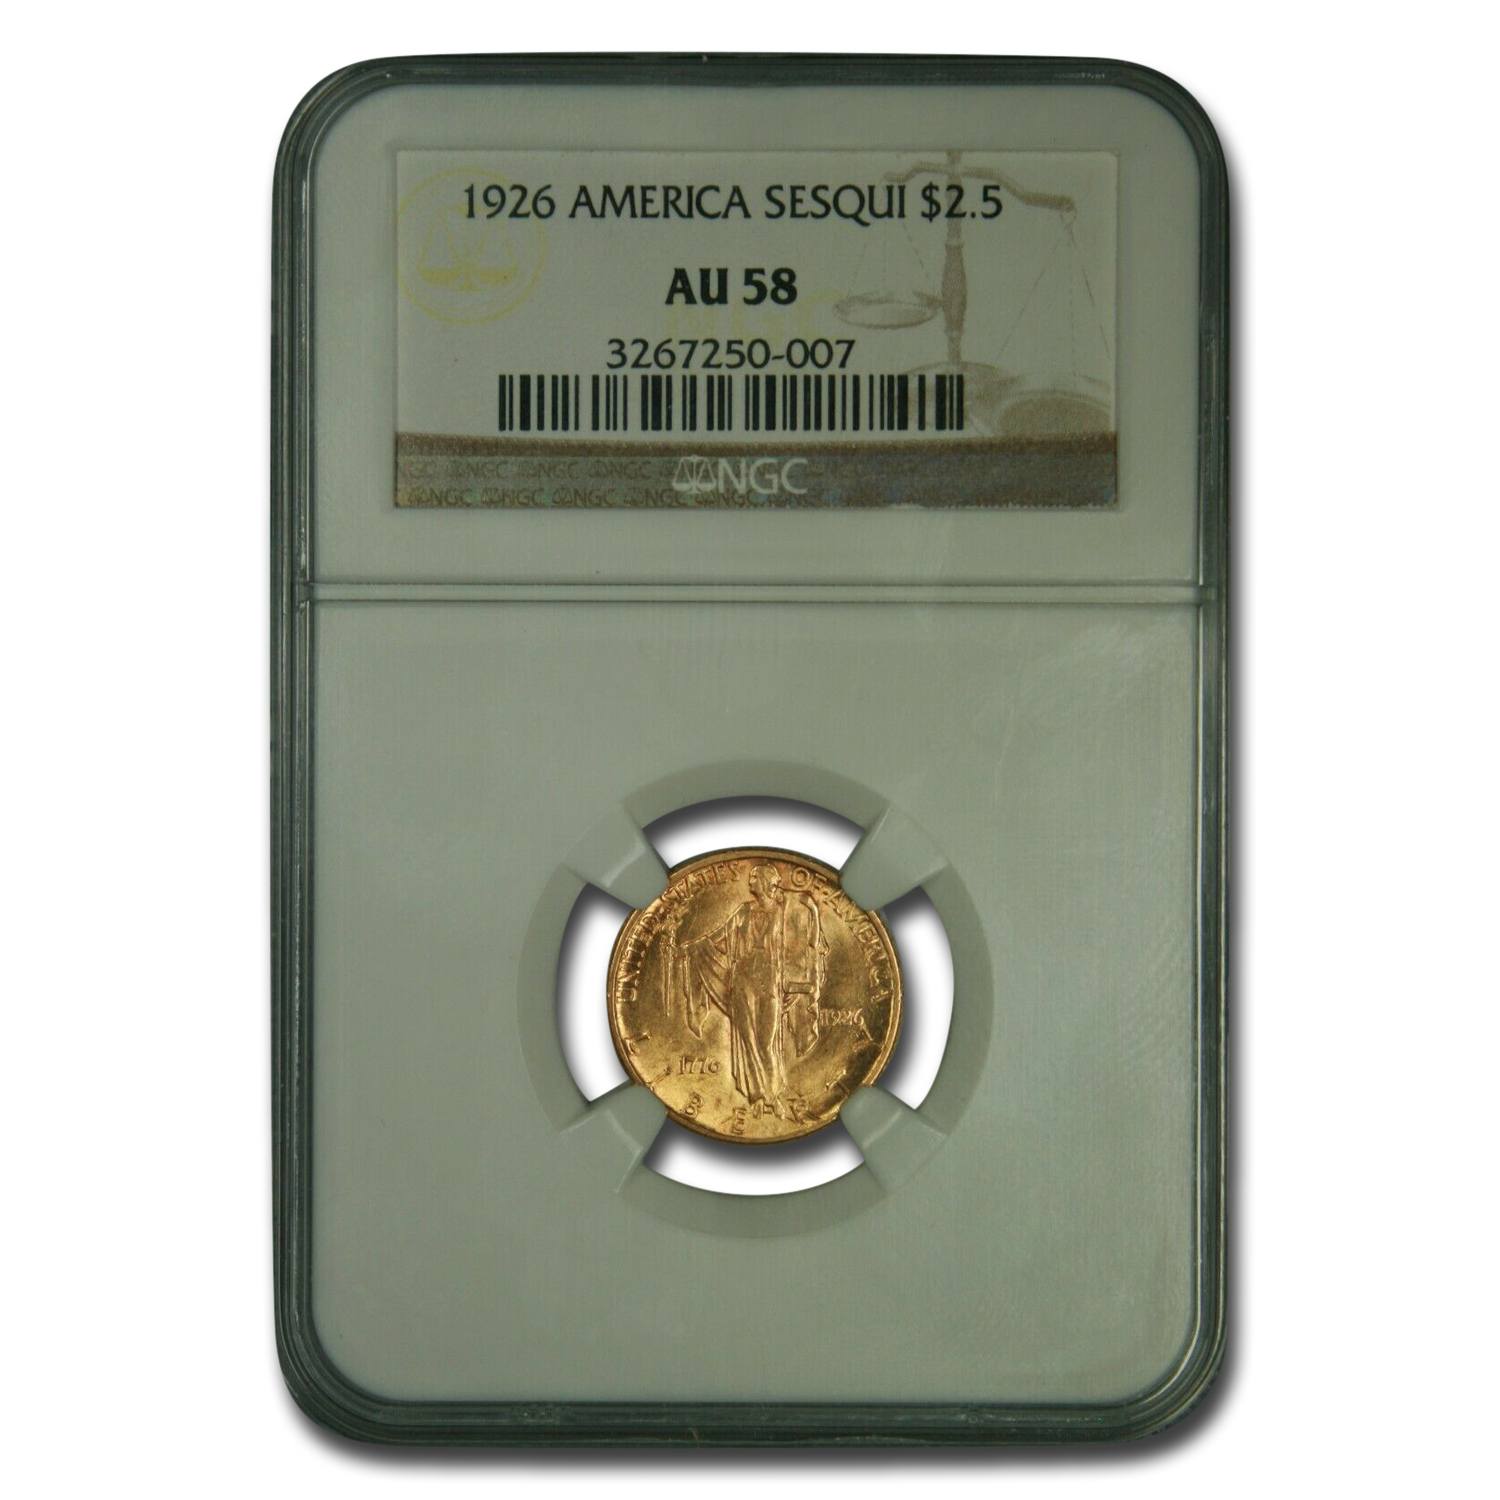 1926 Gold $2.50 America Sesquicentennial AU-58 NGC